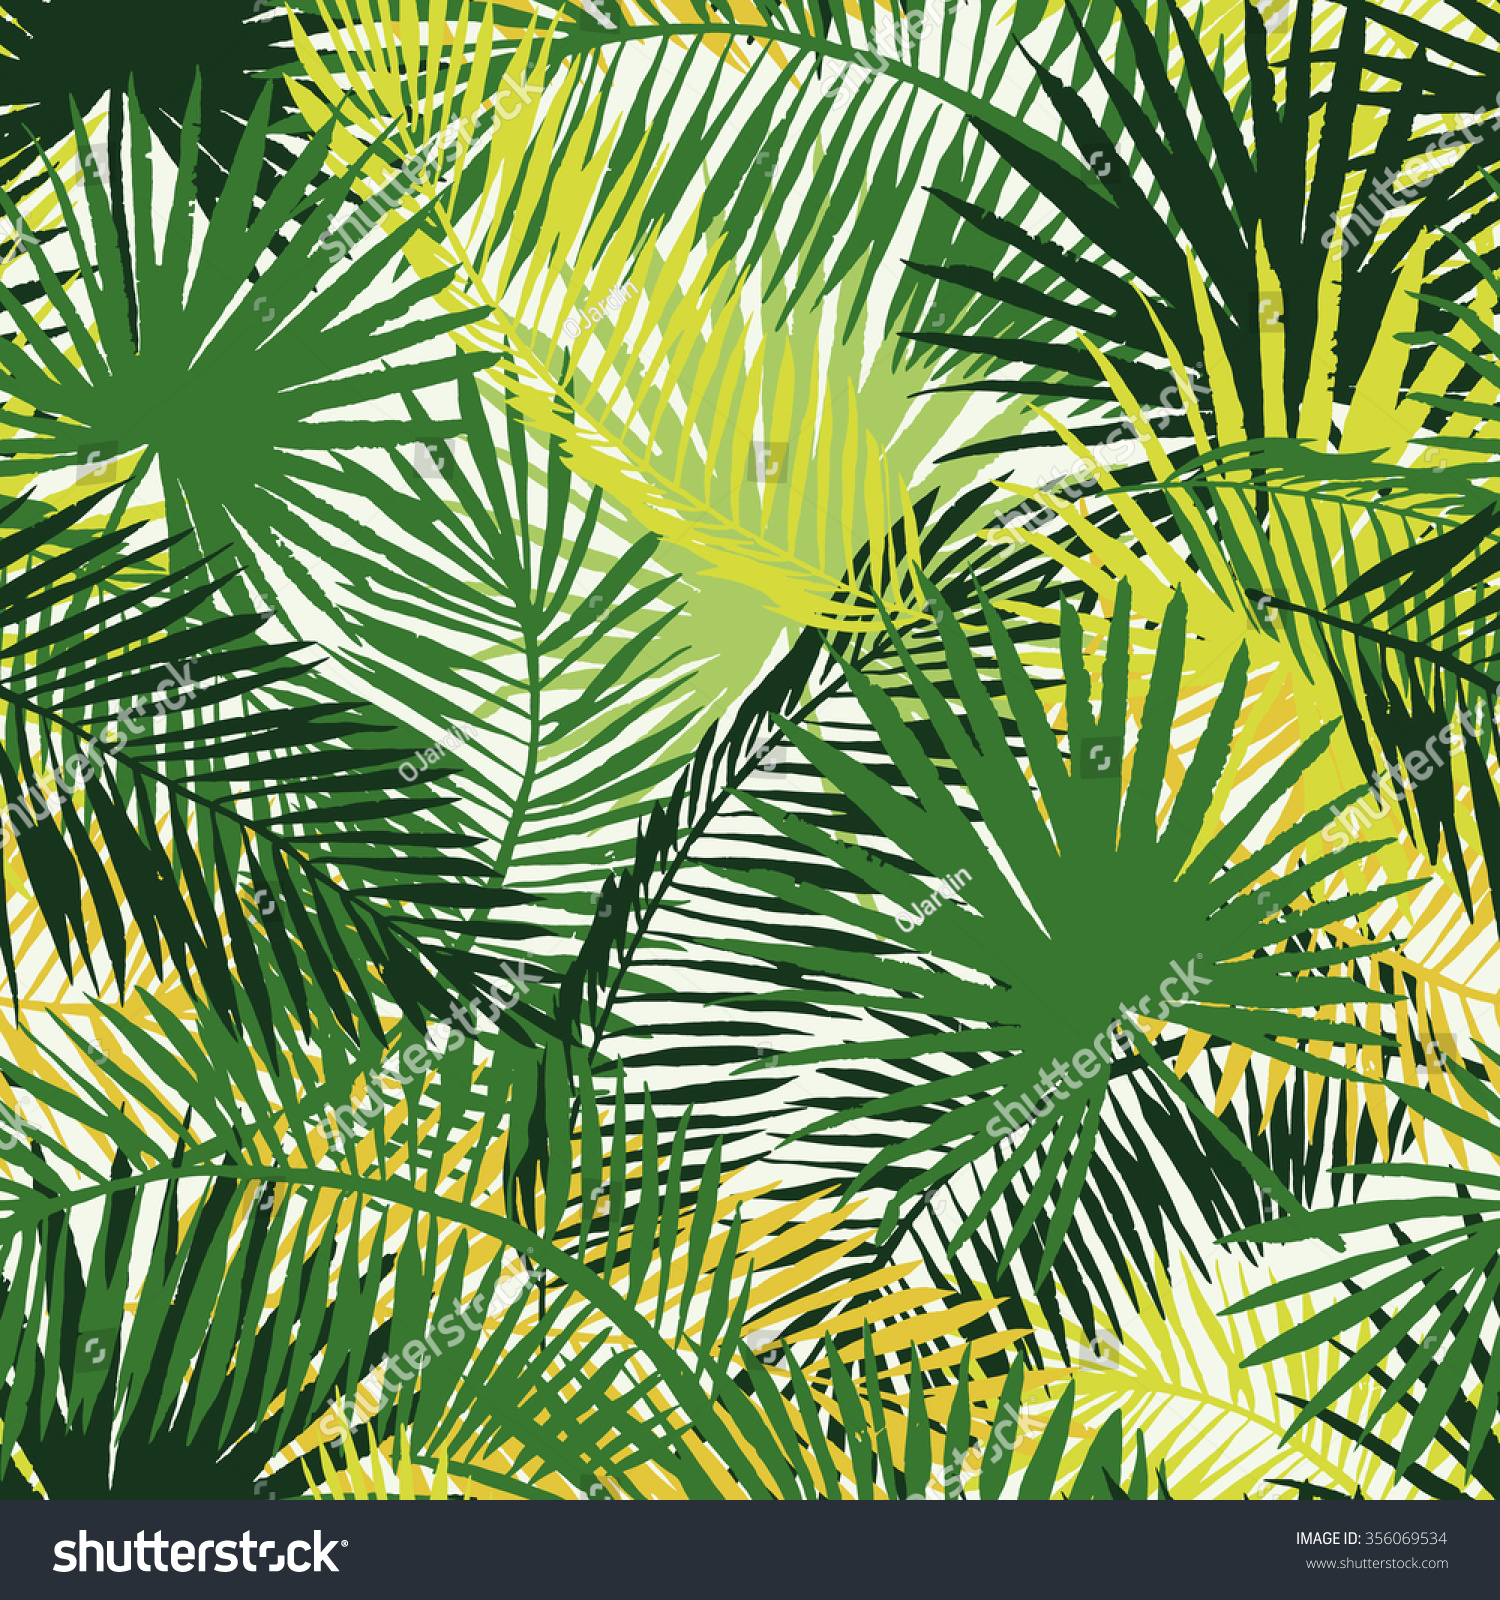 Palm Leaves Silhouettes Background Vector Seamless Stock Vector ...